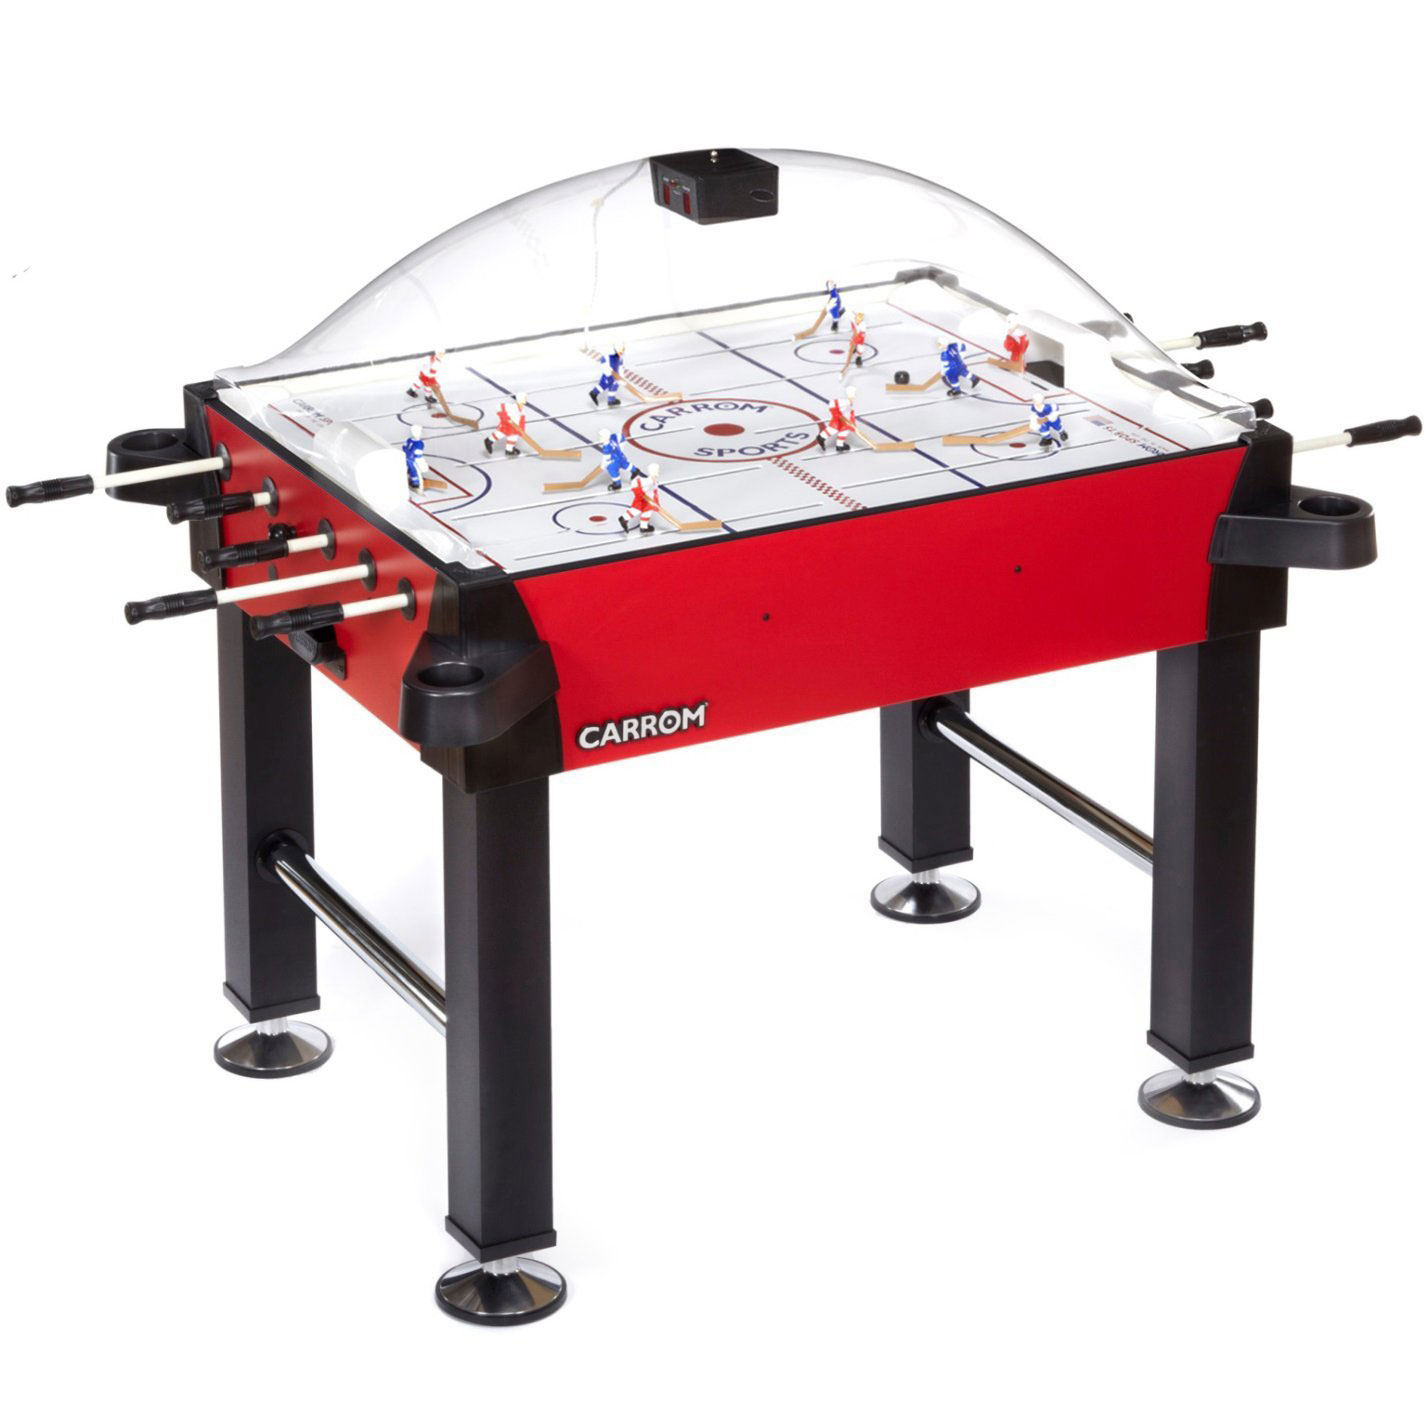 ... Carrom Signature Stick Rod Hockey Table Game With Legs Red #425.00